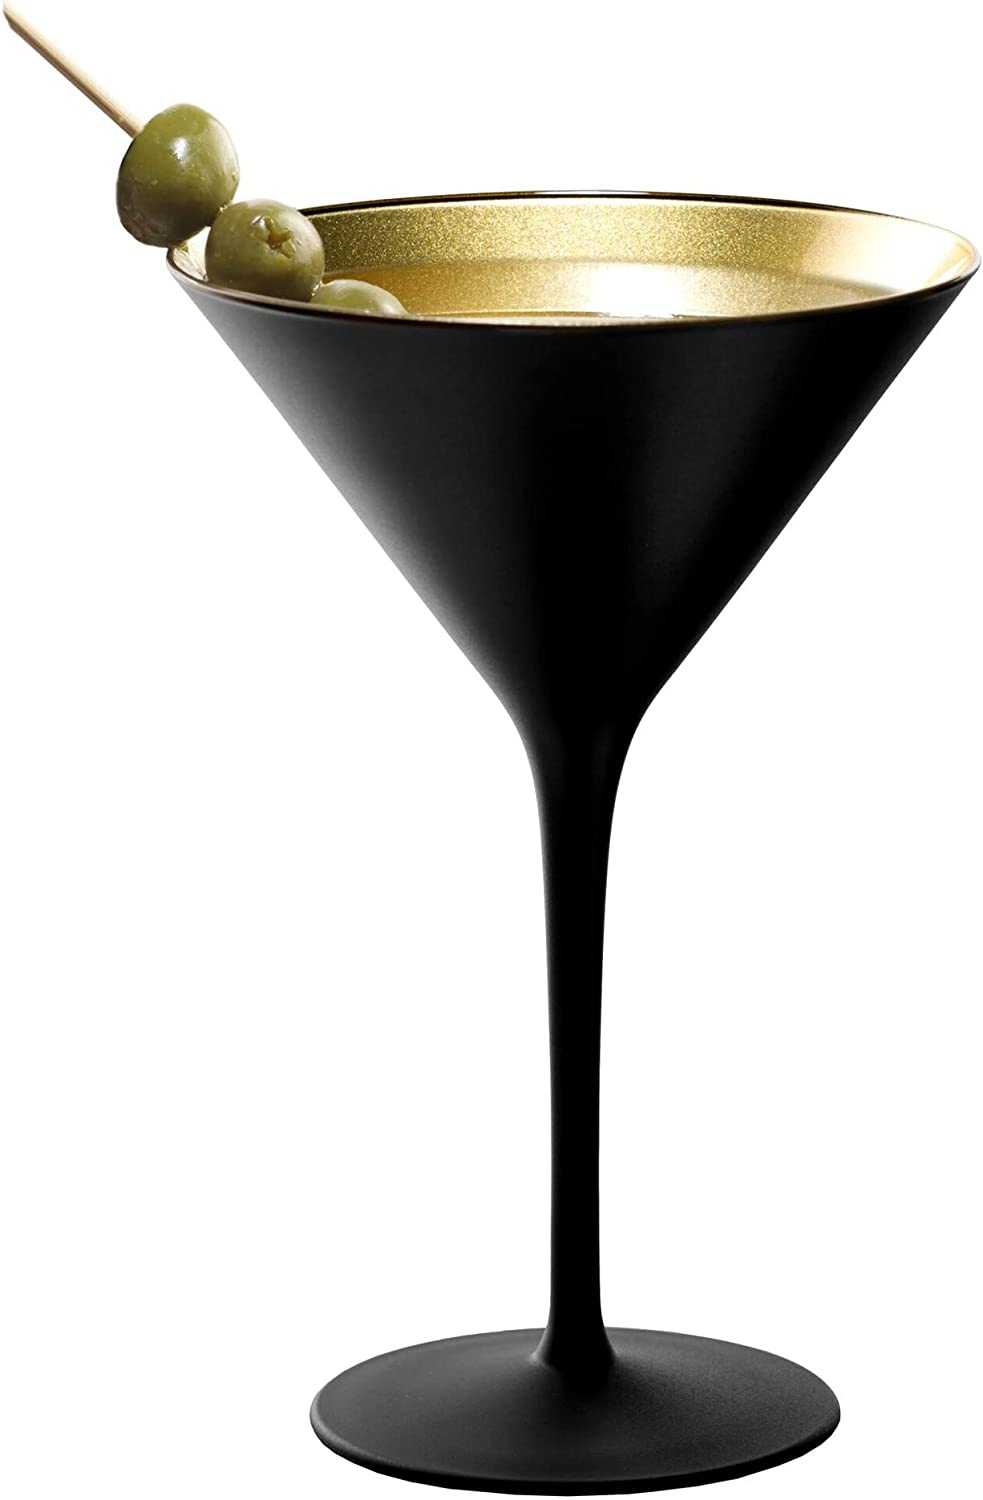 Stolzle Lausitz Olympia German Made Black and Gold Martini Glass, Set of 2